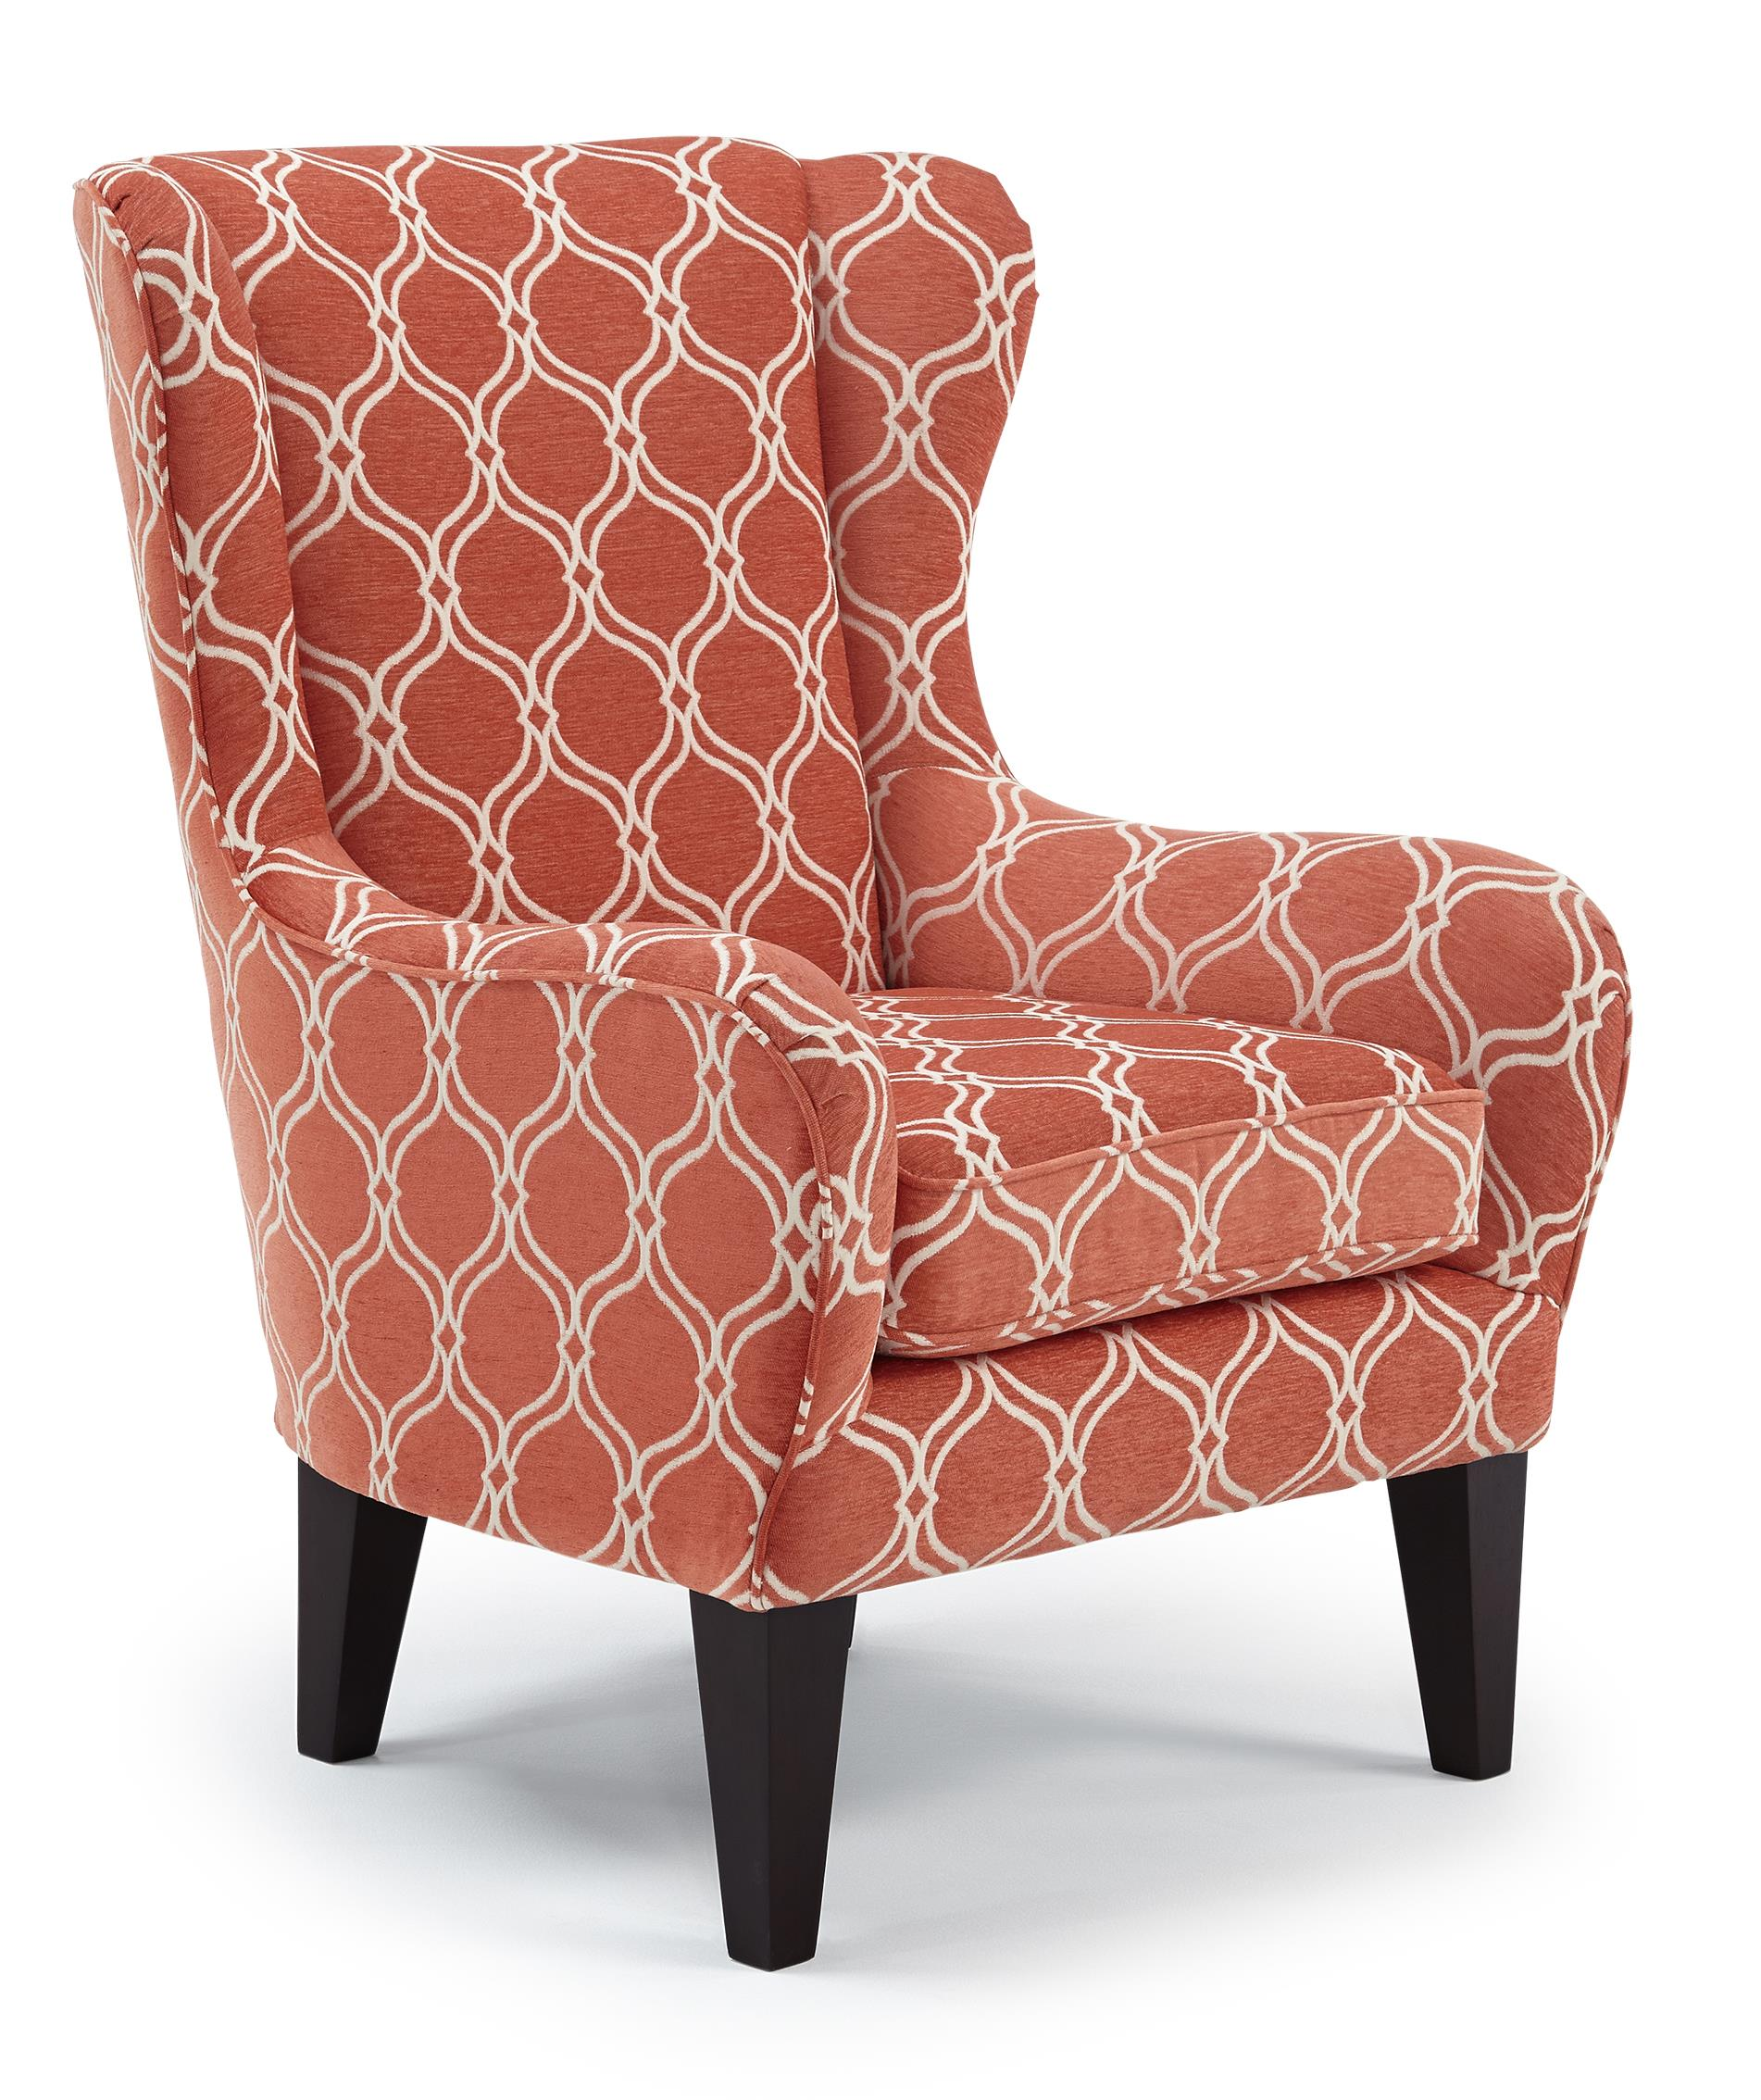 Best Home Furnishings Chairs - Club Lorette Club Chair - Item Number: 7180-28424